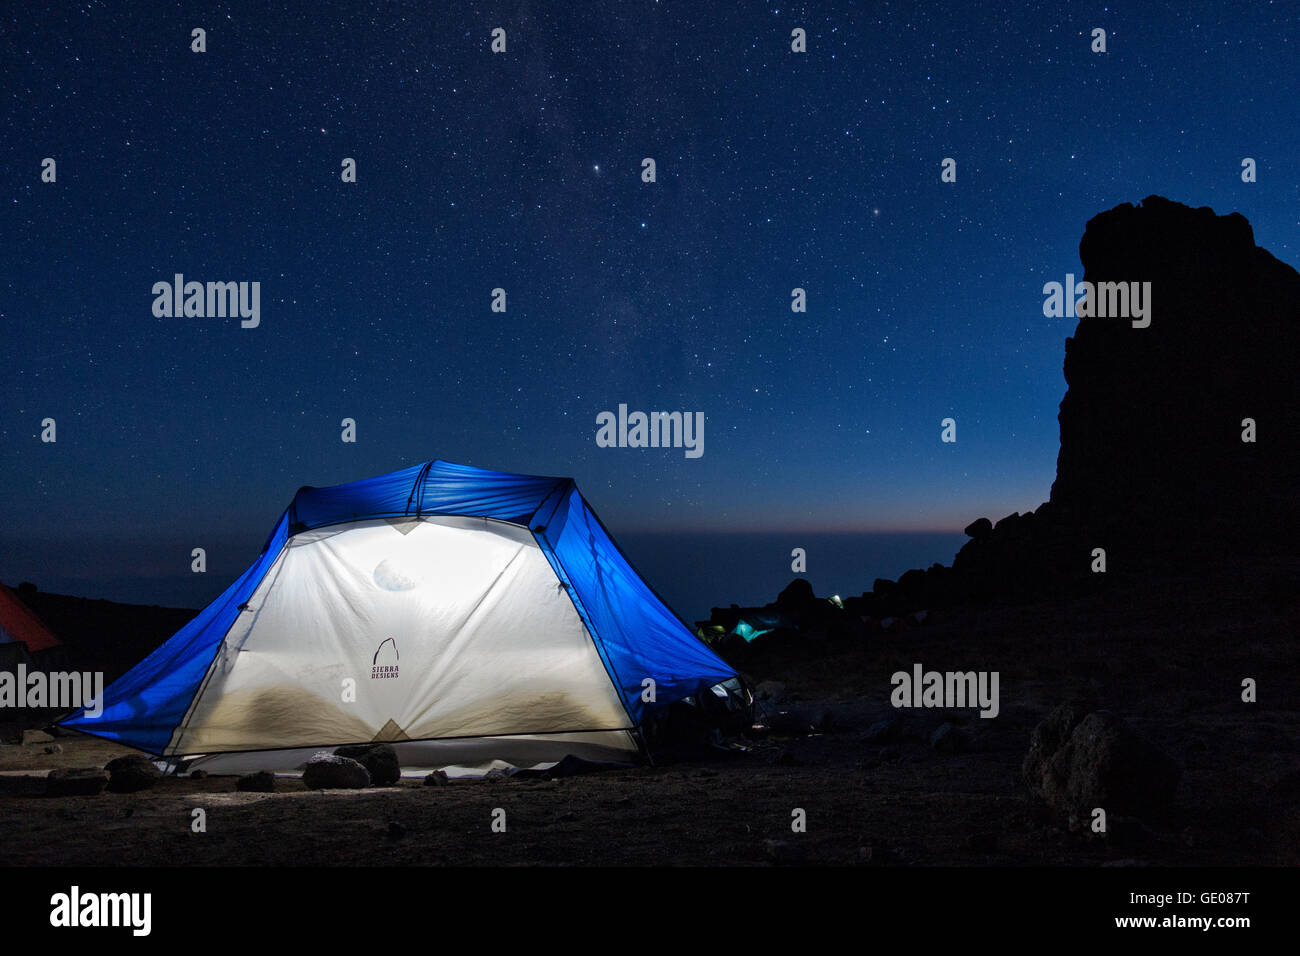 A tent at Lava Tower Camp at night, Mount Kilimanjaro National Park, Tanzania Stock Photo